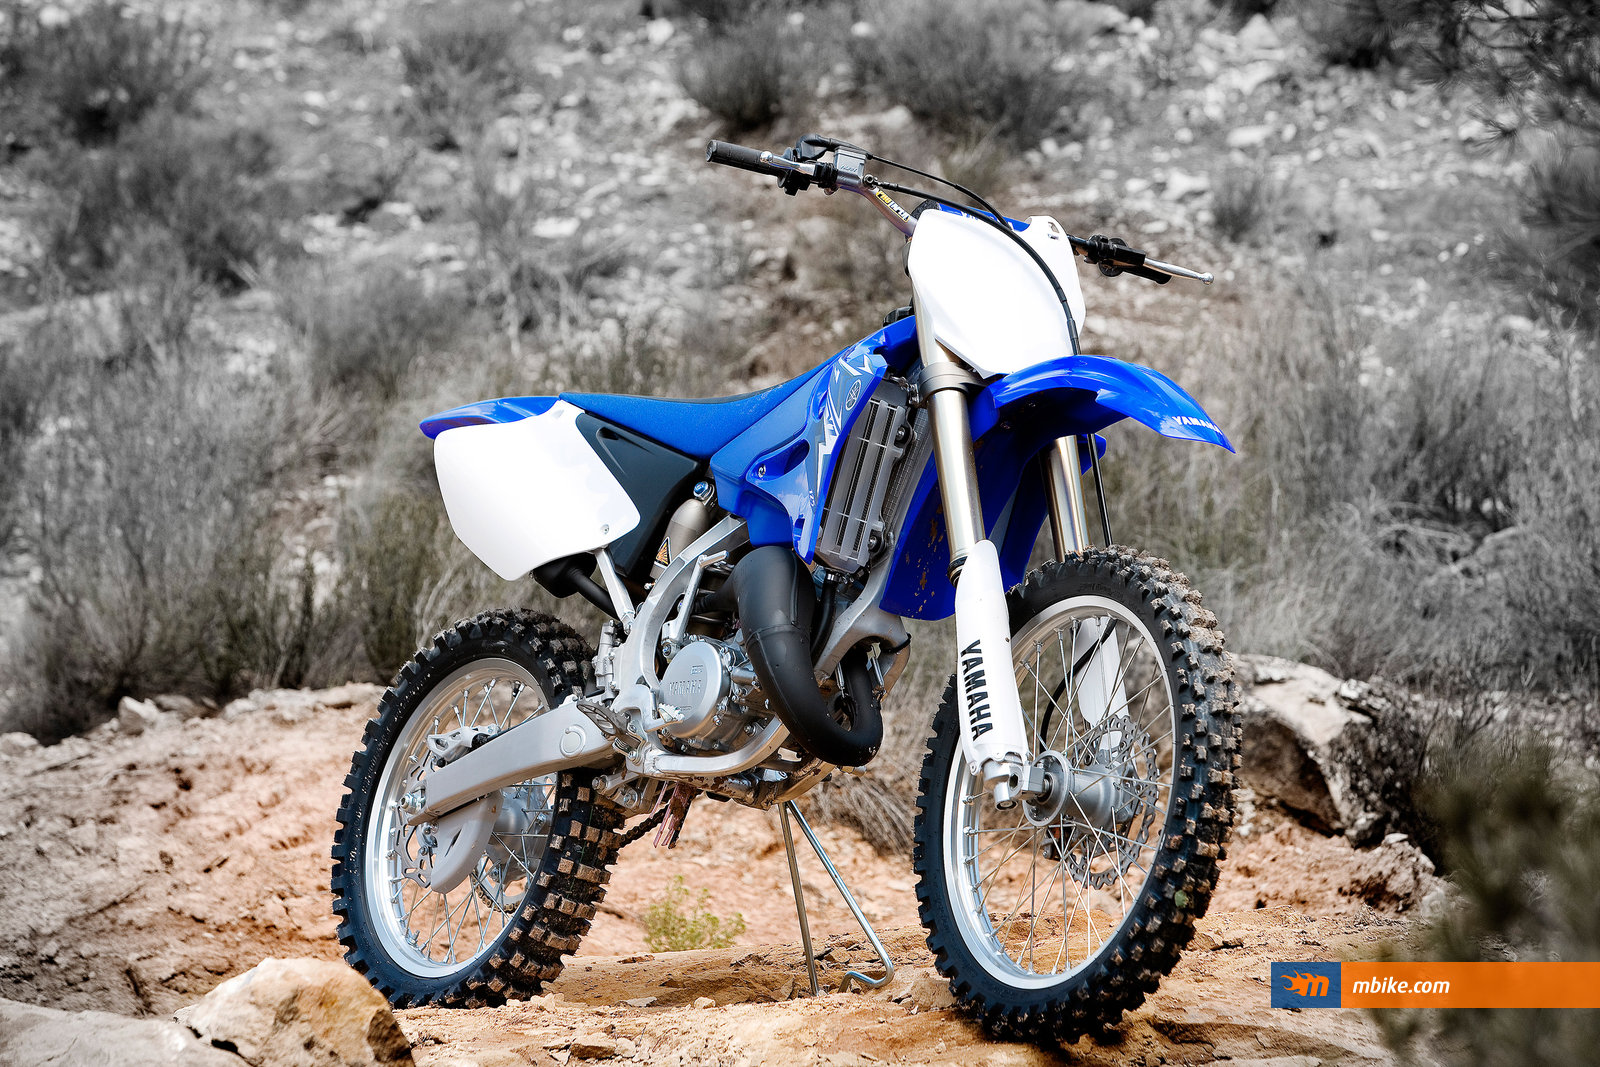 2009 Yamaha YZ 125 Wallpaper - Mbike.